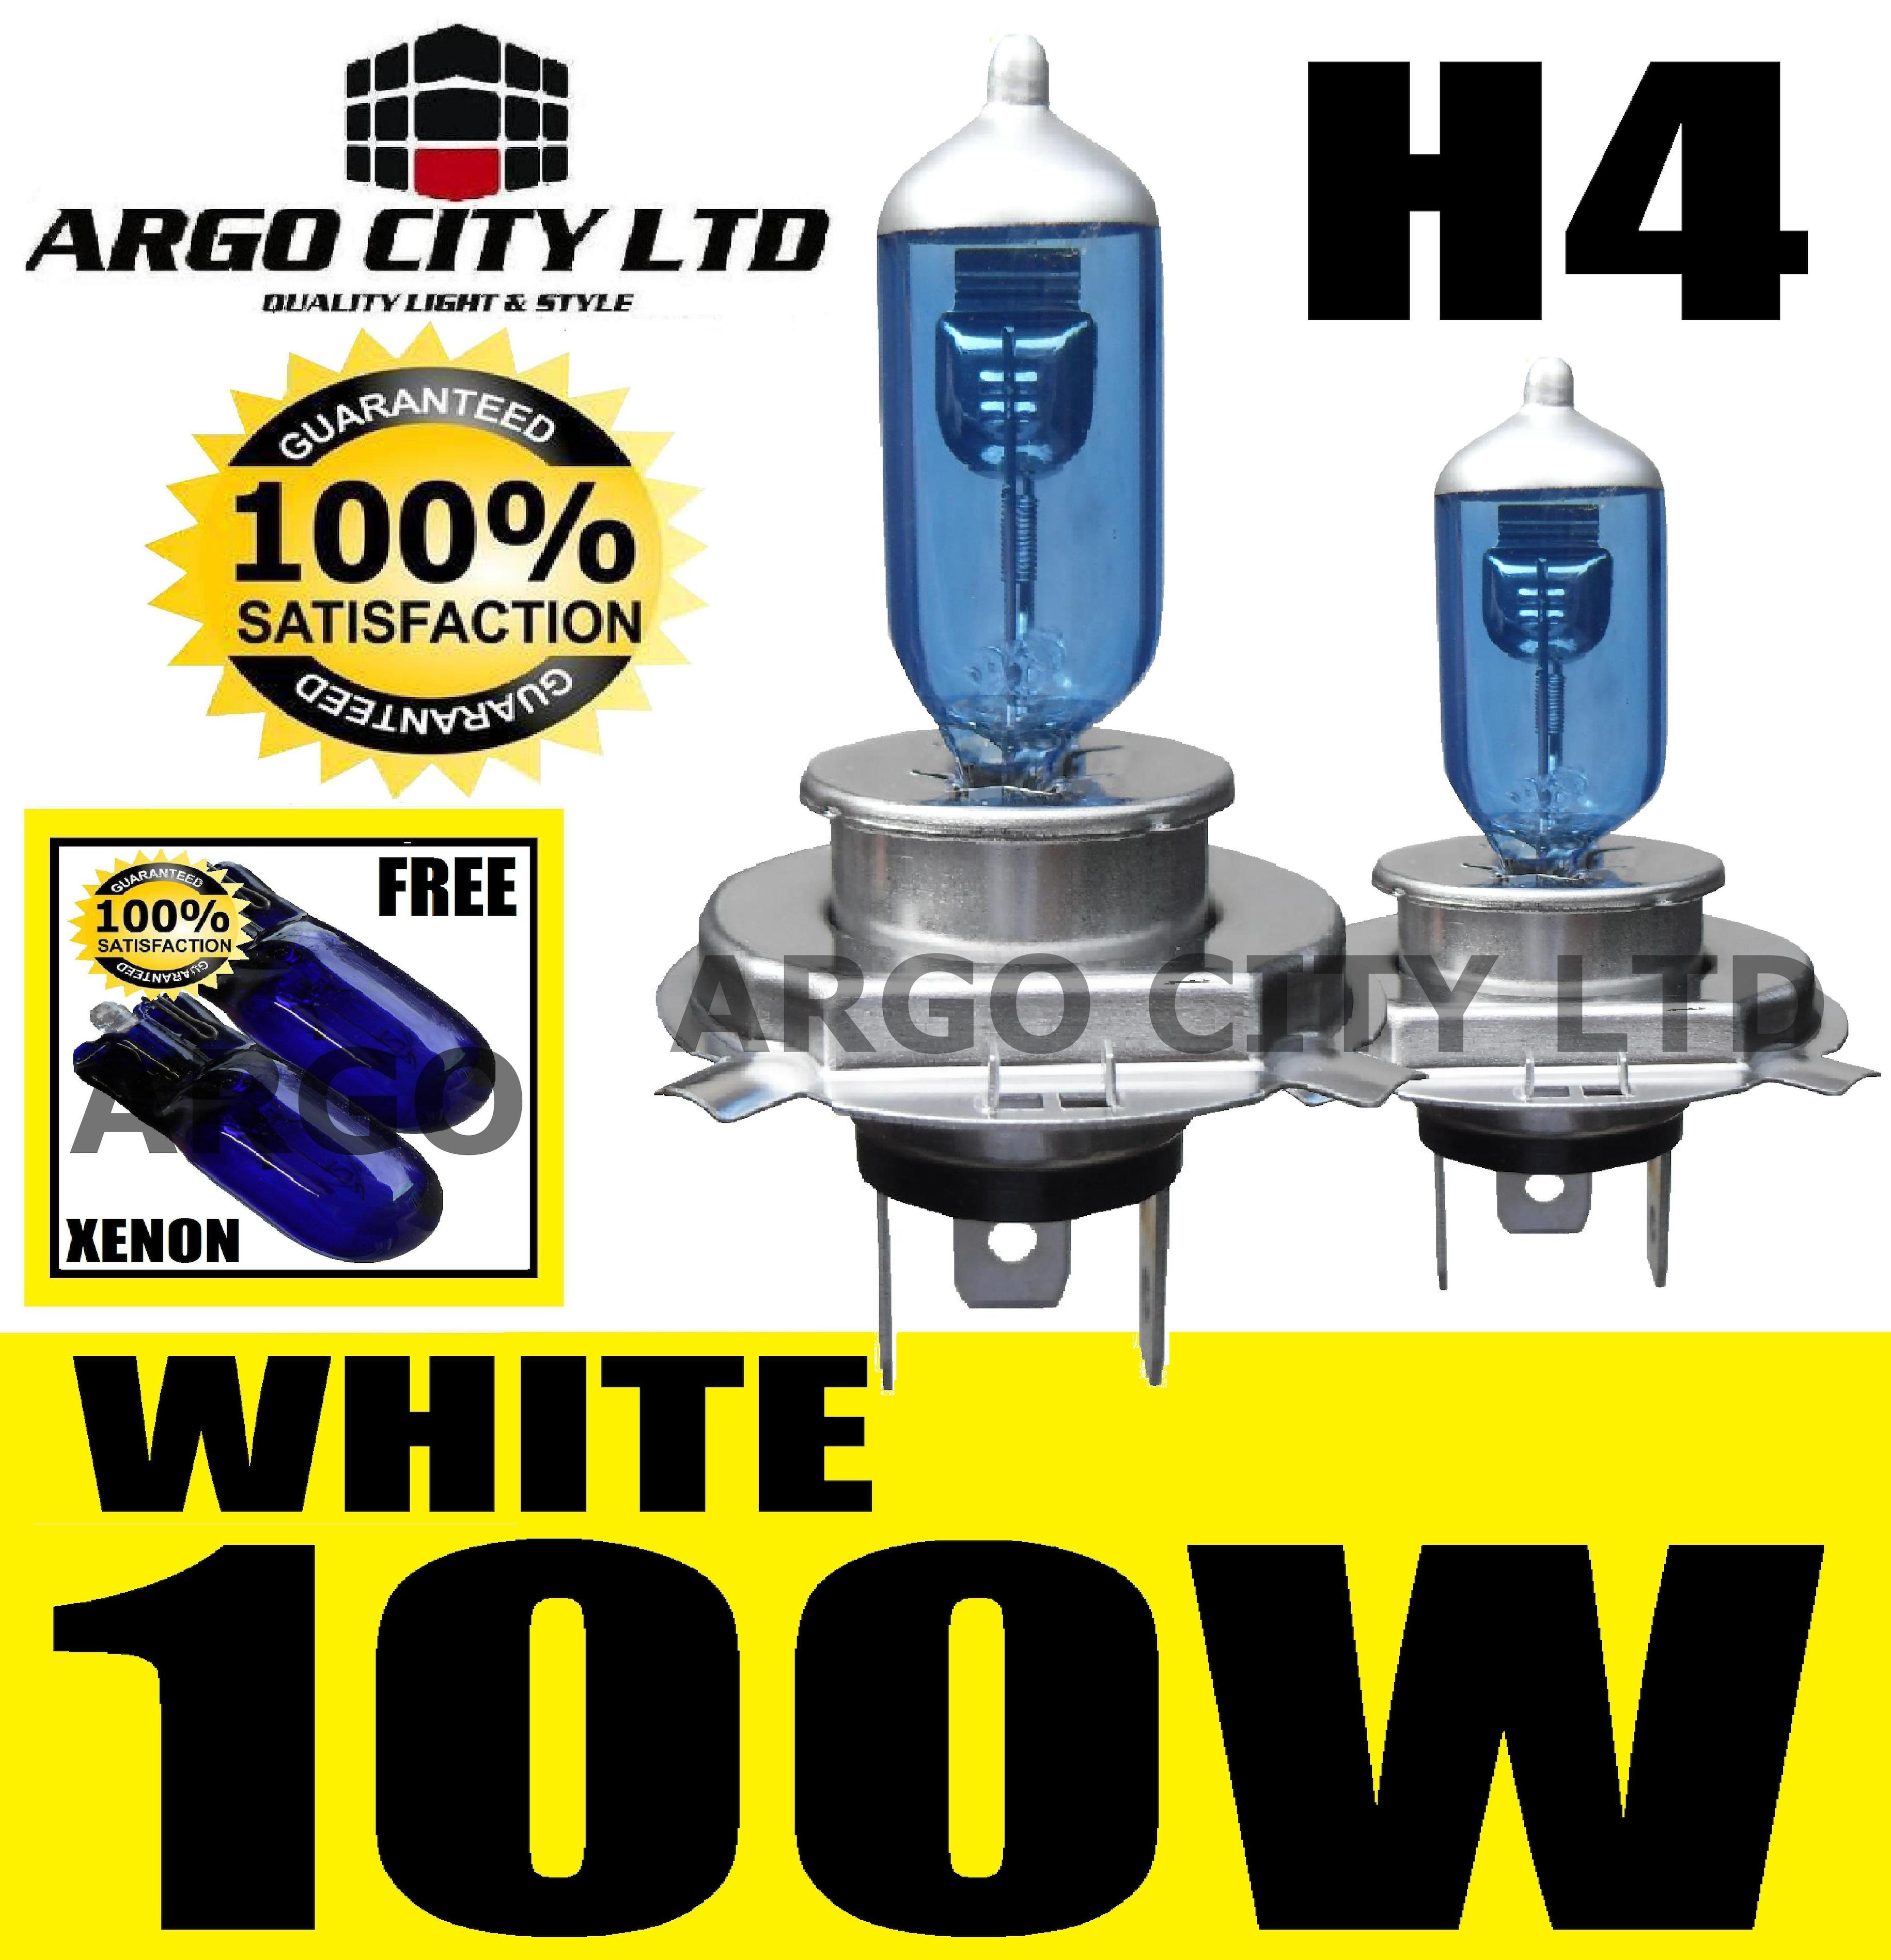 H4 XENON WHITE 472 HEADLIGHT BULBS HARLEY DAVIDSON FLSTSCI 1450 Softail Springer